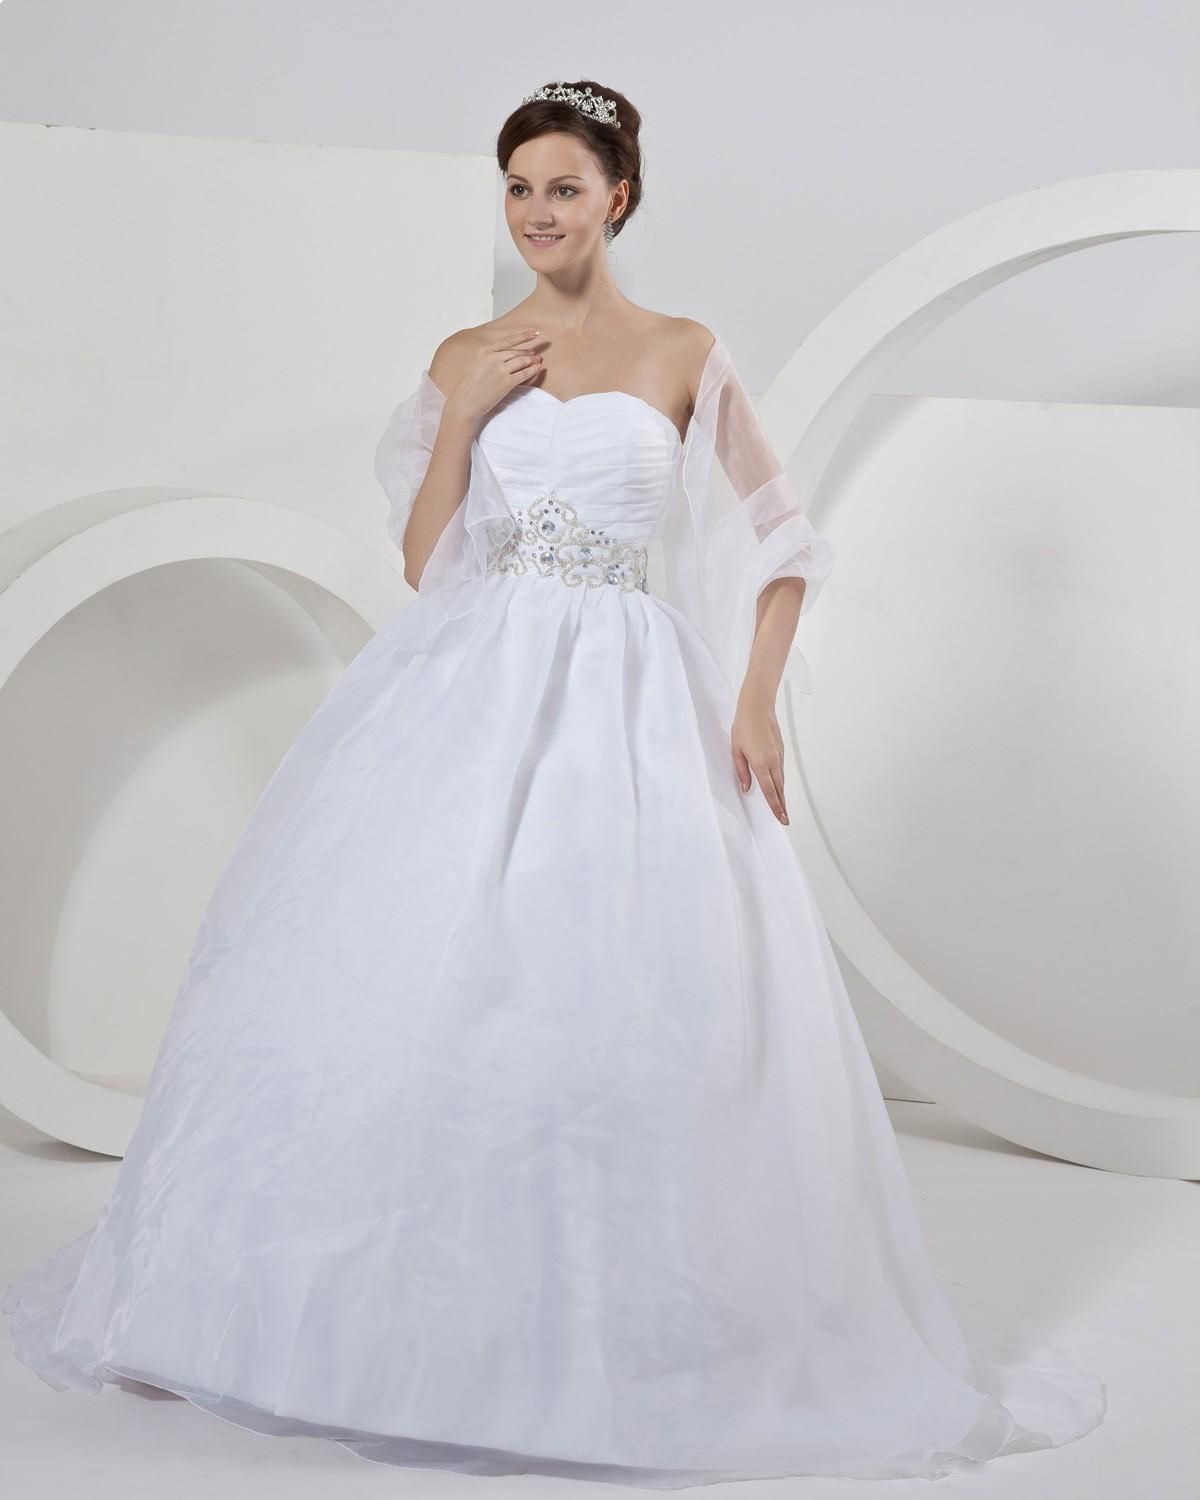 Mini white wedding dress  Details about High Collar Mini Short Wedding Dress Tea Length bateau